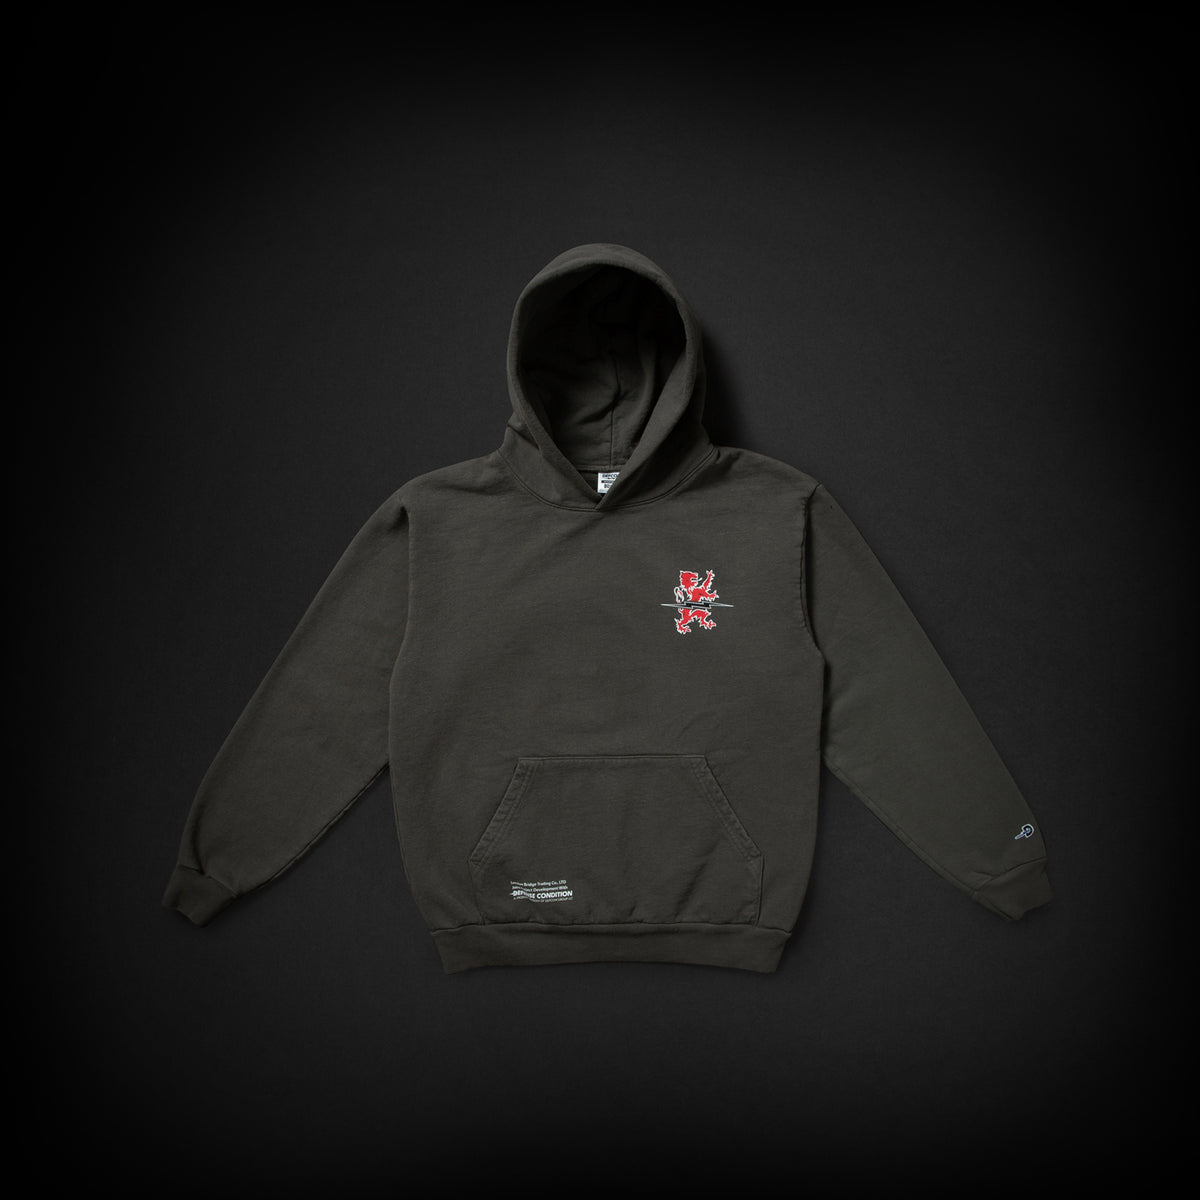 DEFCON LBT HOODED SWEATSHIRT - MAS GREY